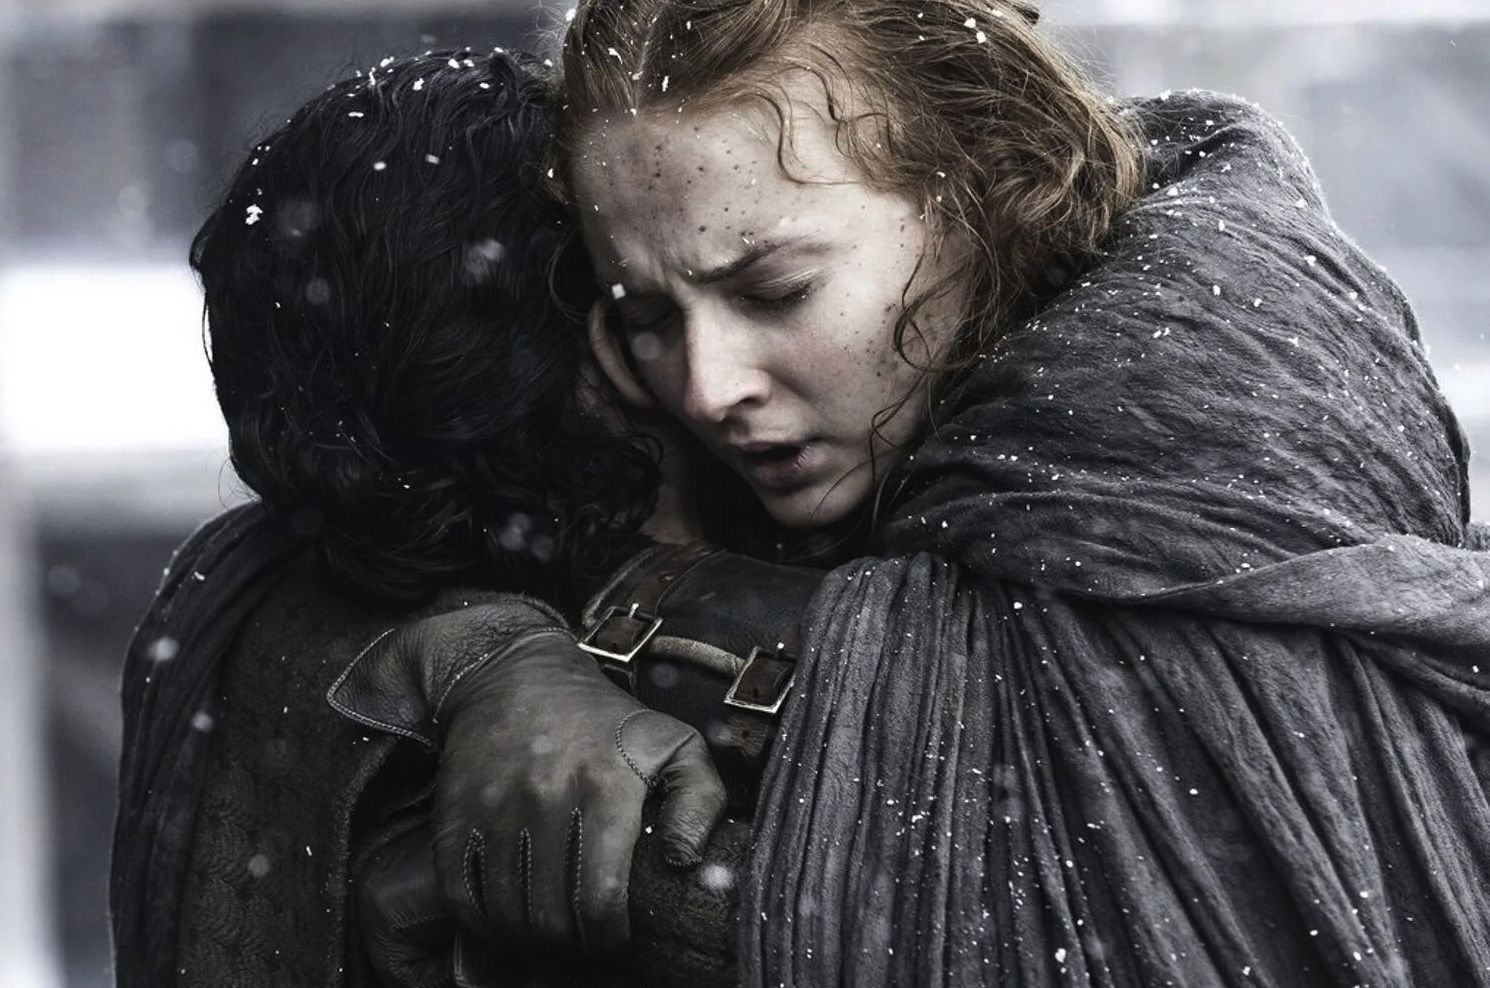 Watch Sophie Turner's tearful last day on Game of Thrones